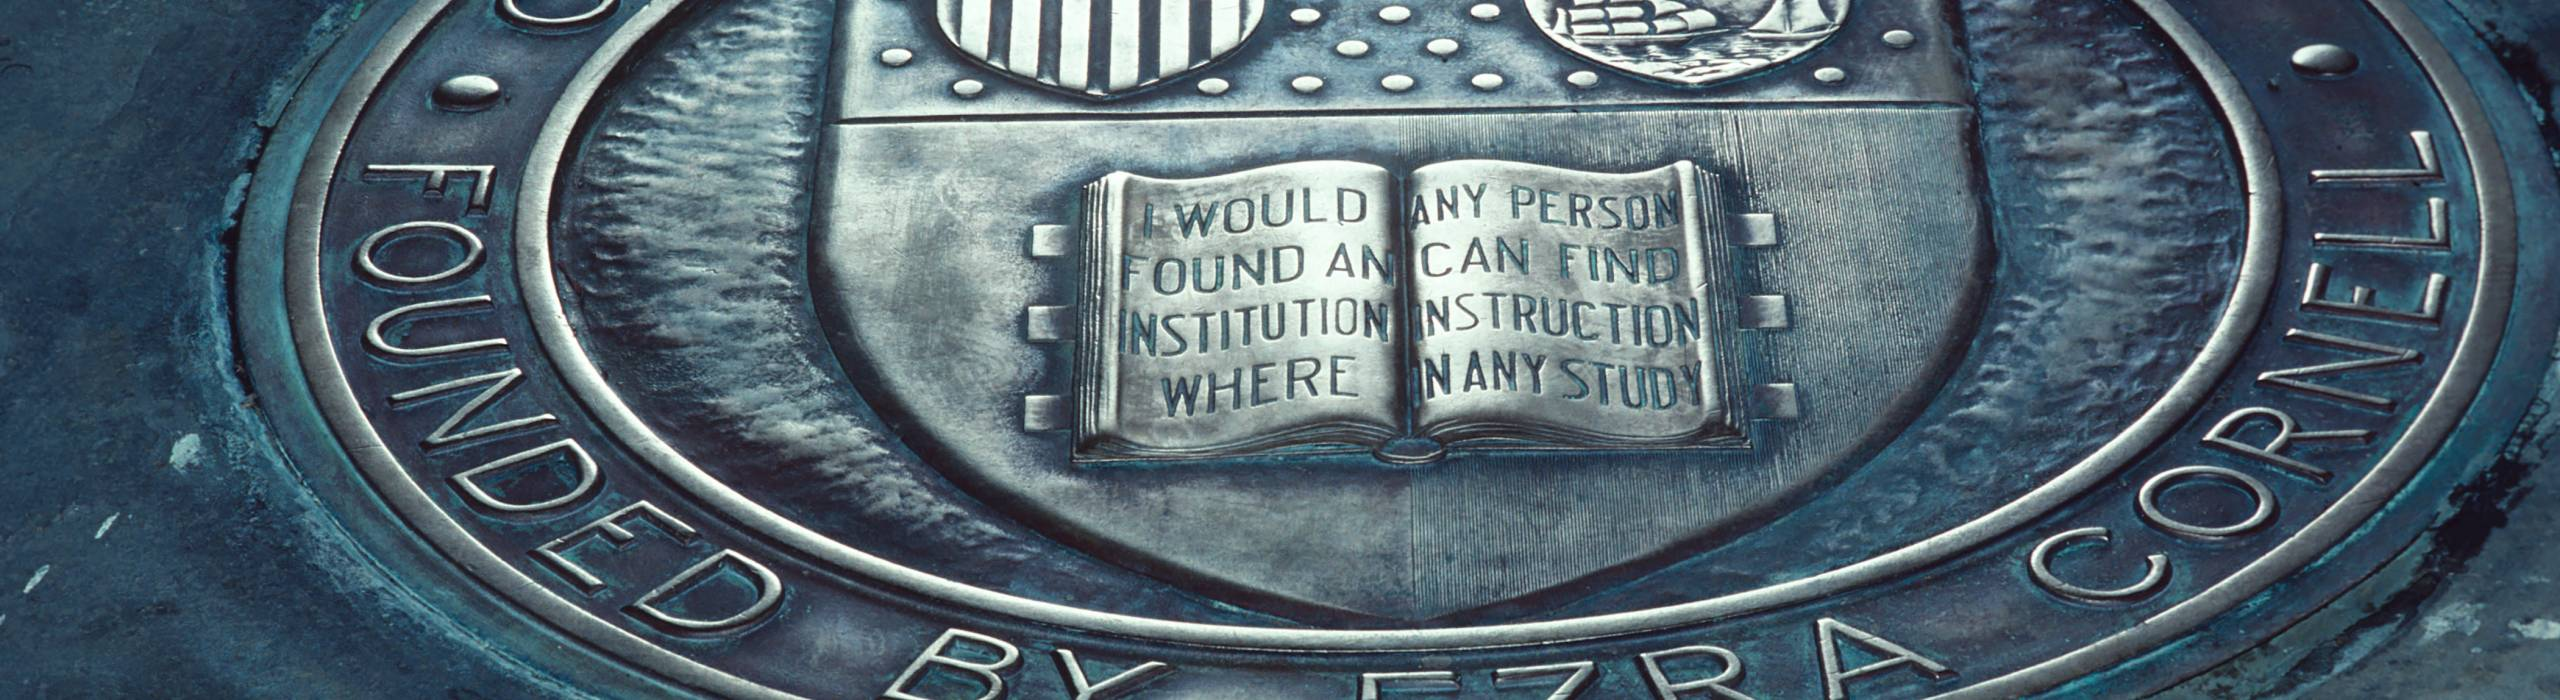 "A closeup of the book portion of the Cornell Seal at Myron Taylor Hall: ""I would found an institution where any person can find instruction in any study."